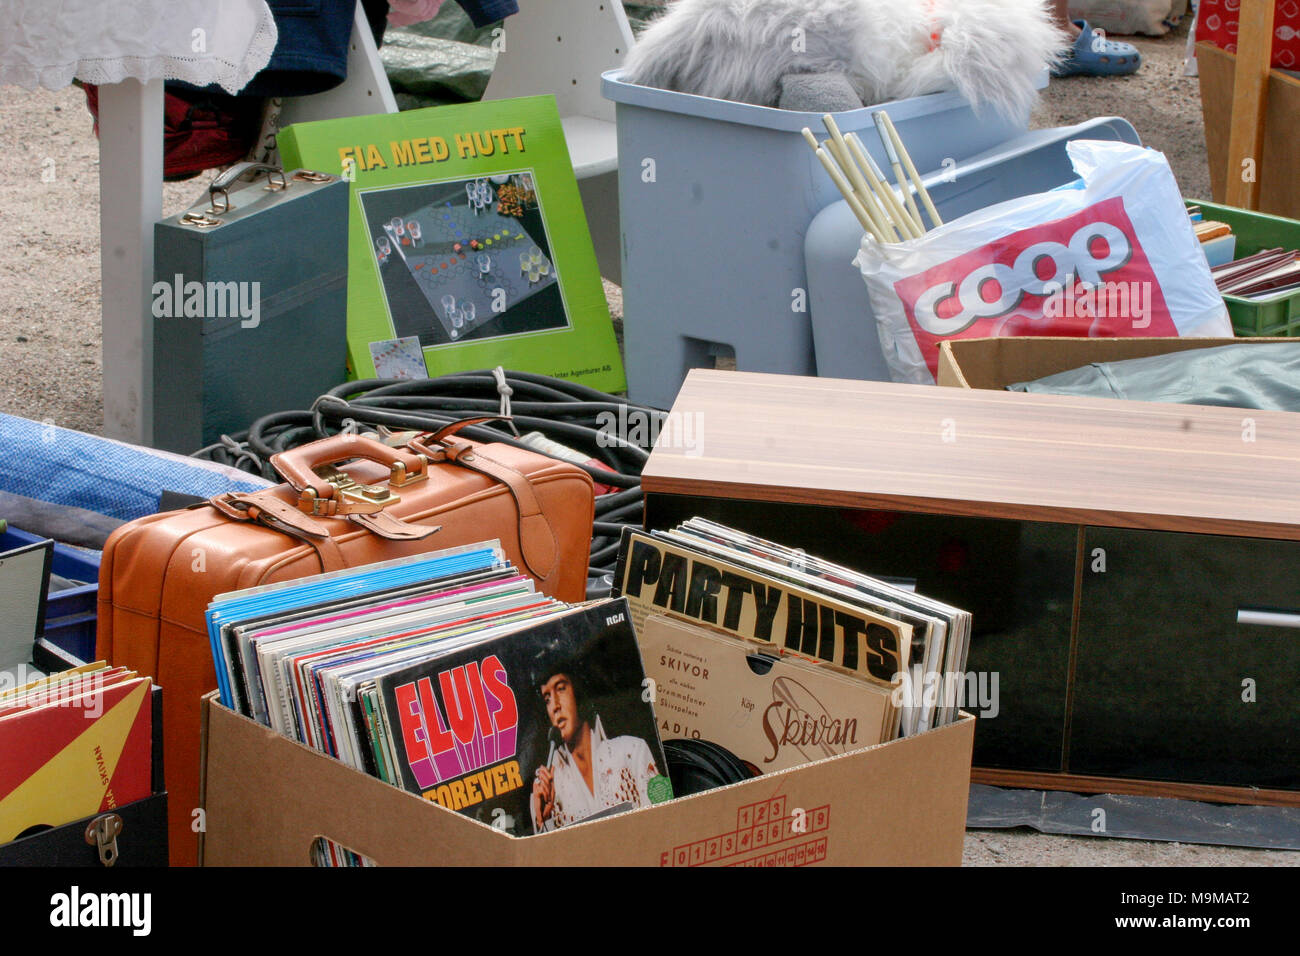 FLEA MARKET with old things, 2015 - Stock Image